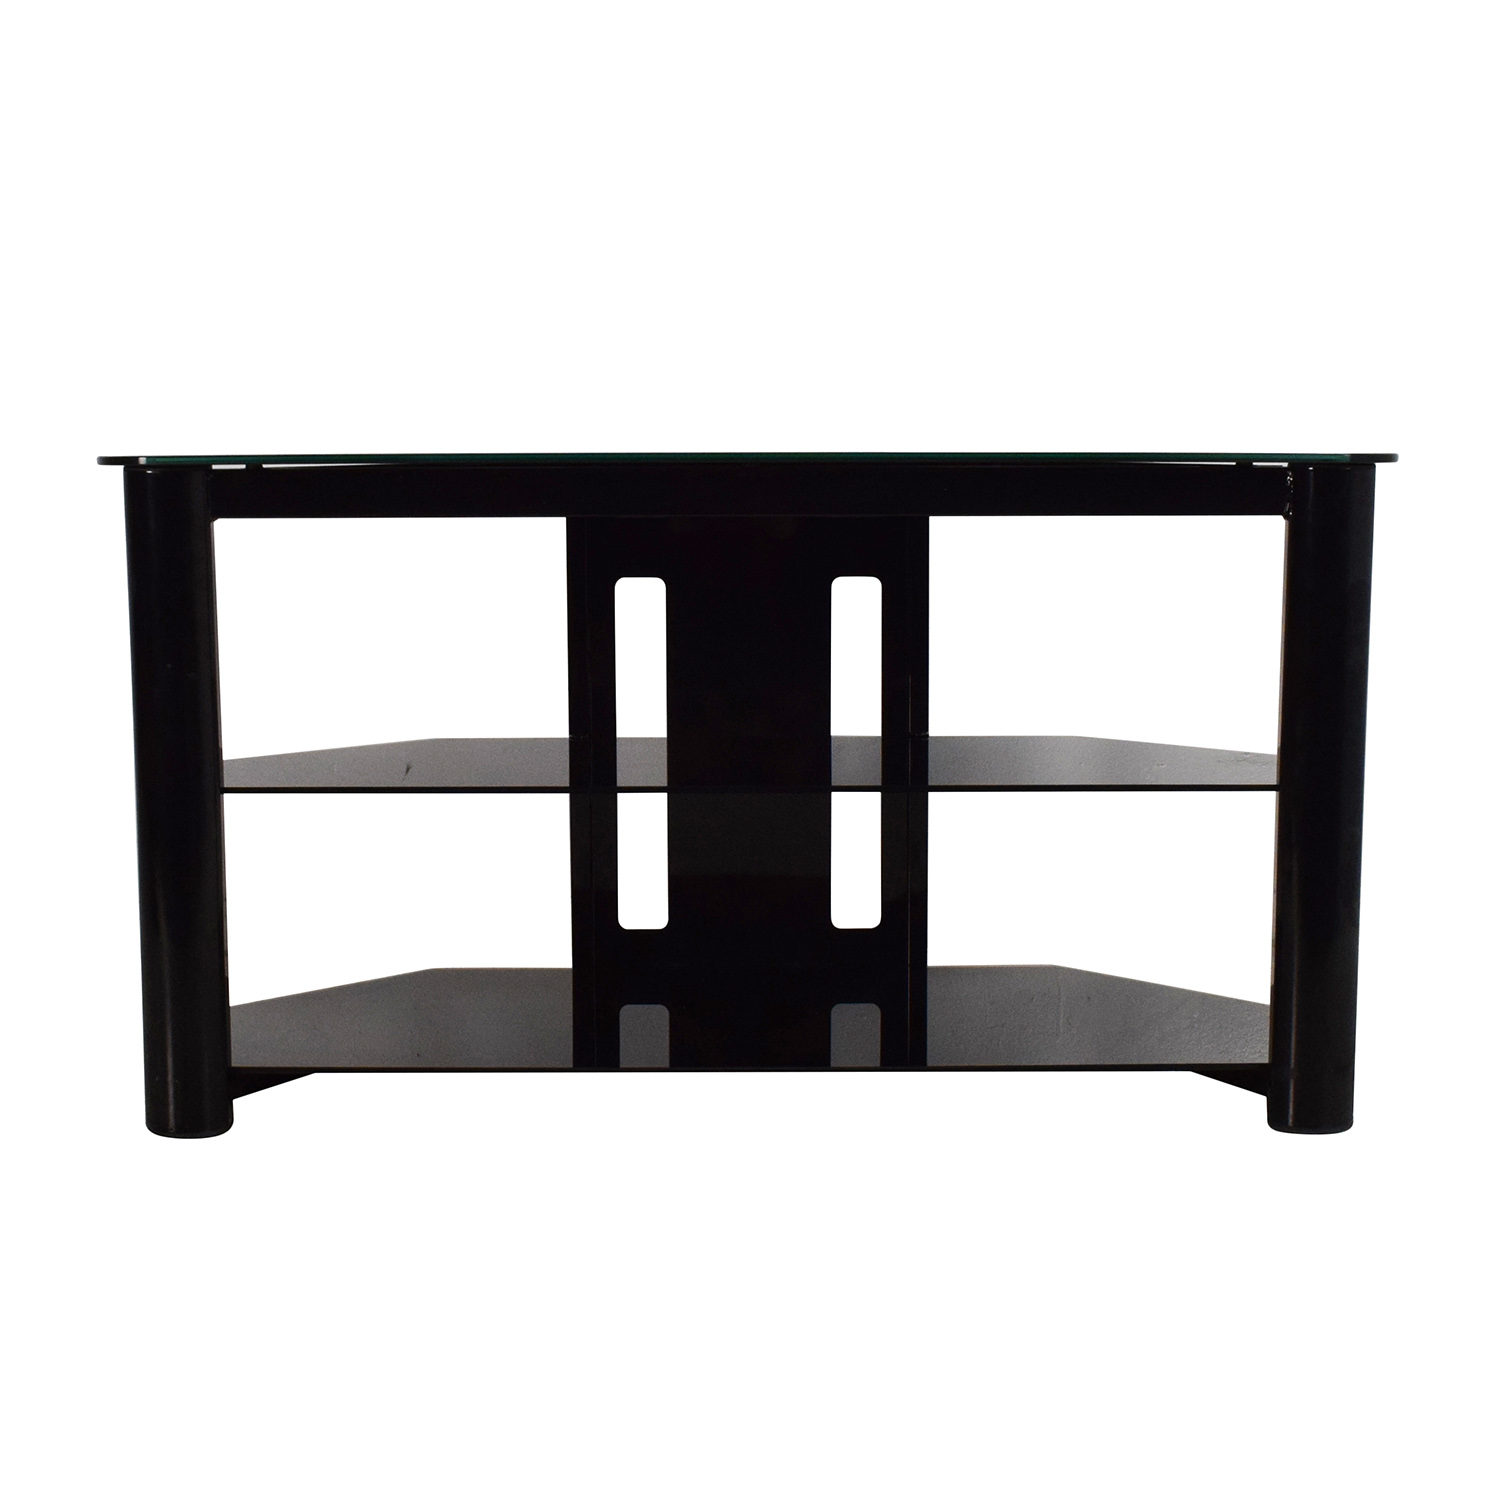 61% OFF - Best Buy Best Buy Black Glass TV Stand / Storage